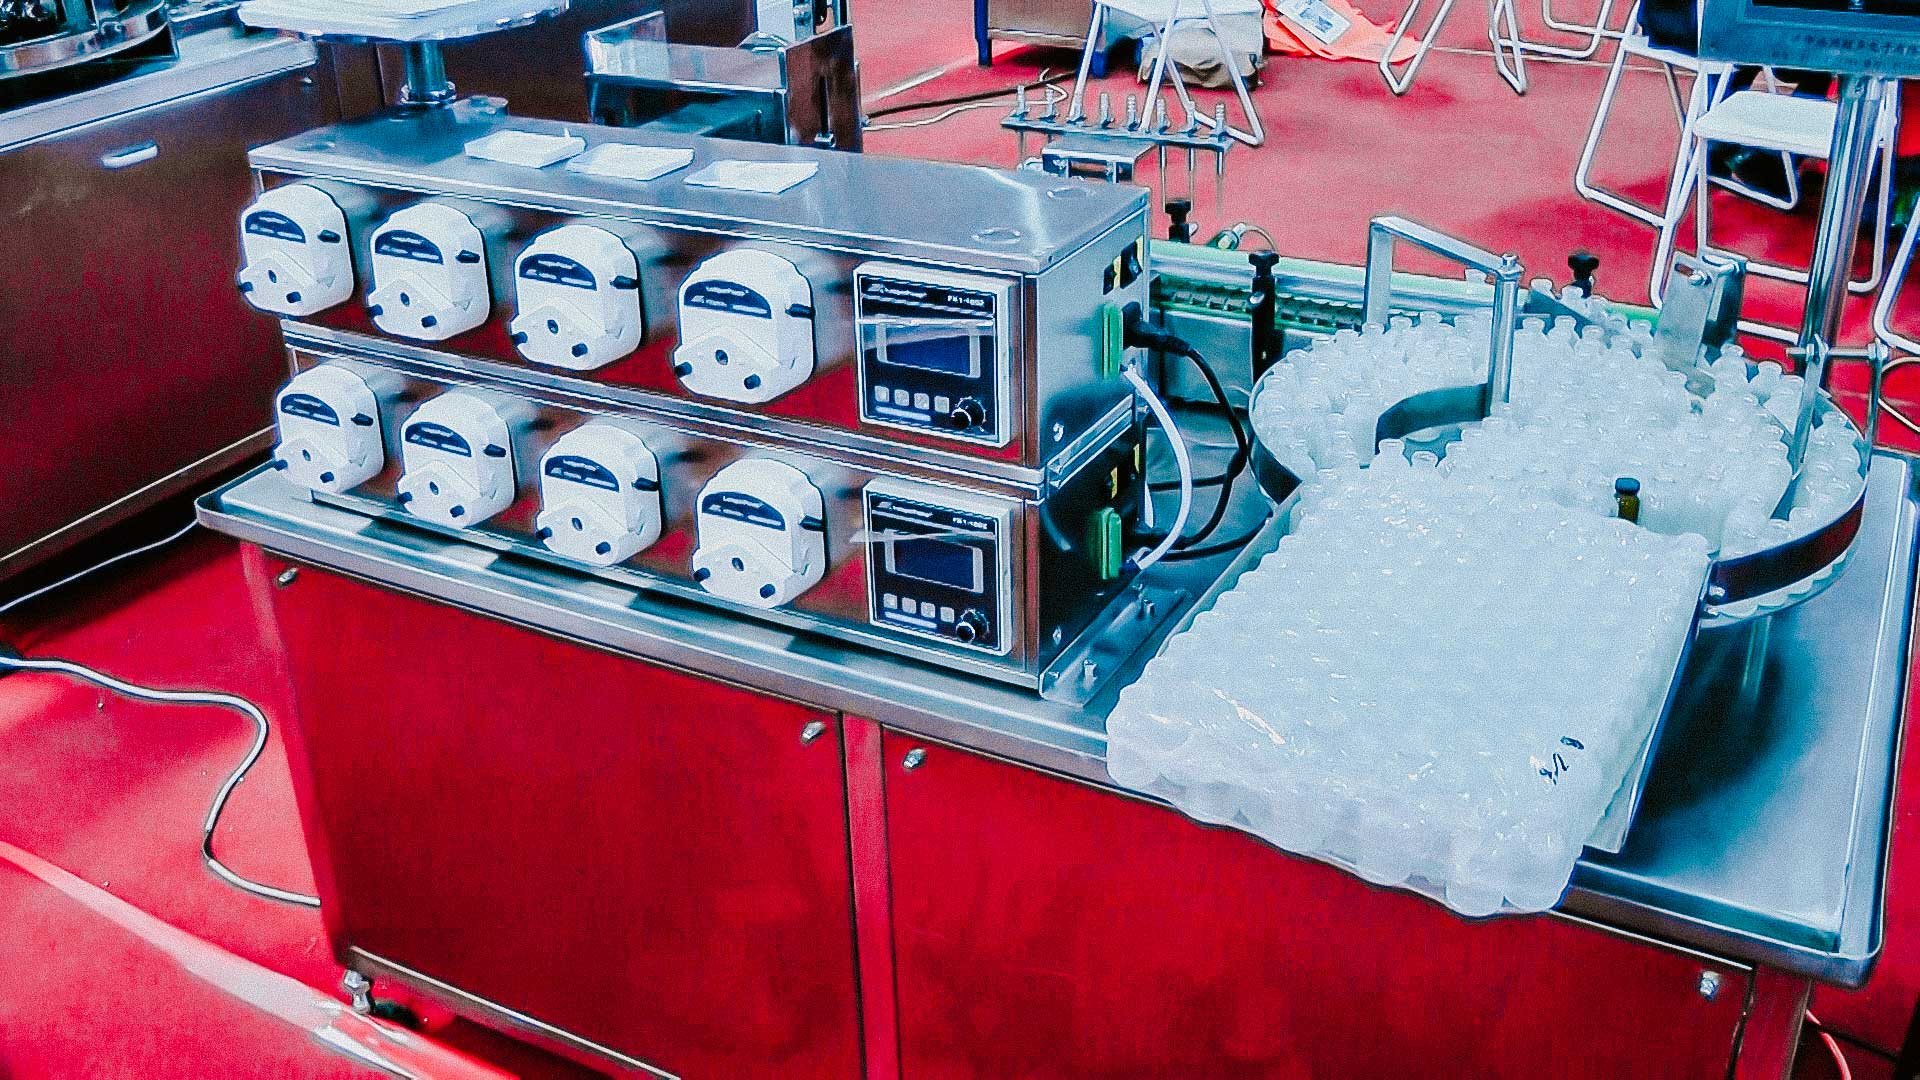 Automatic liquid filling machine for glass bottles with peristaltic pumps